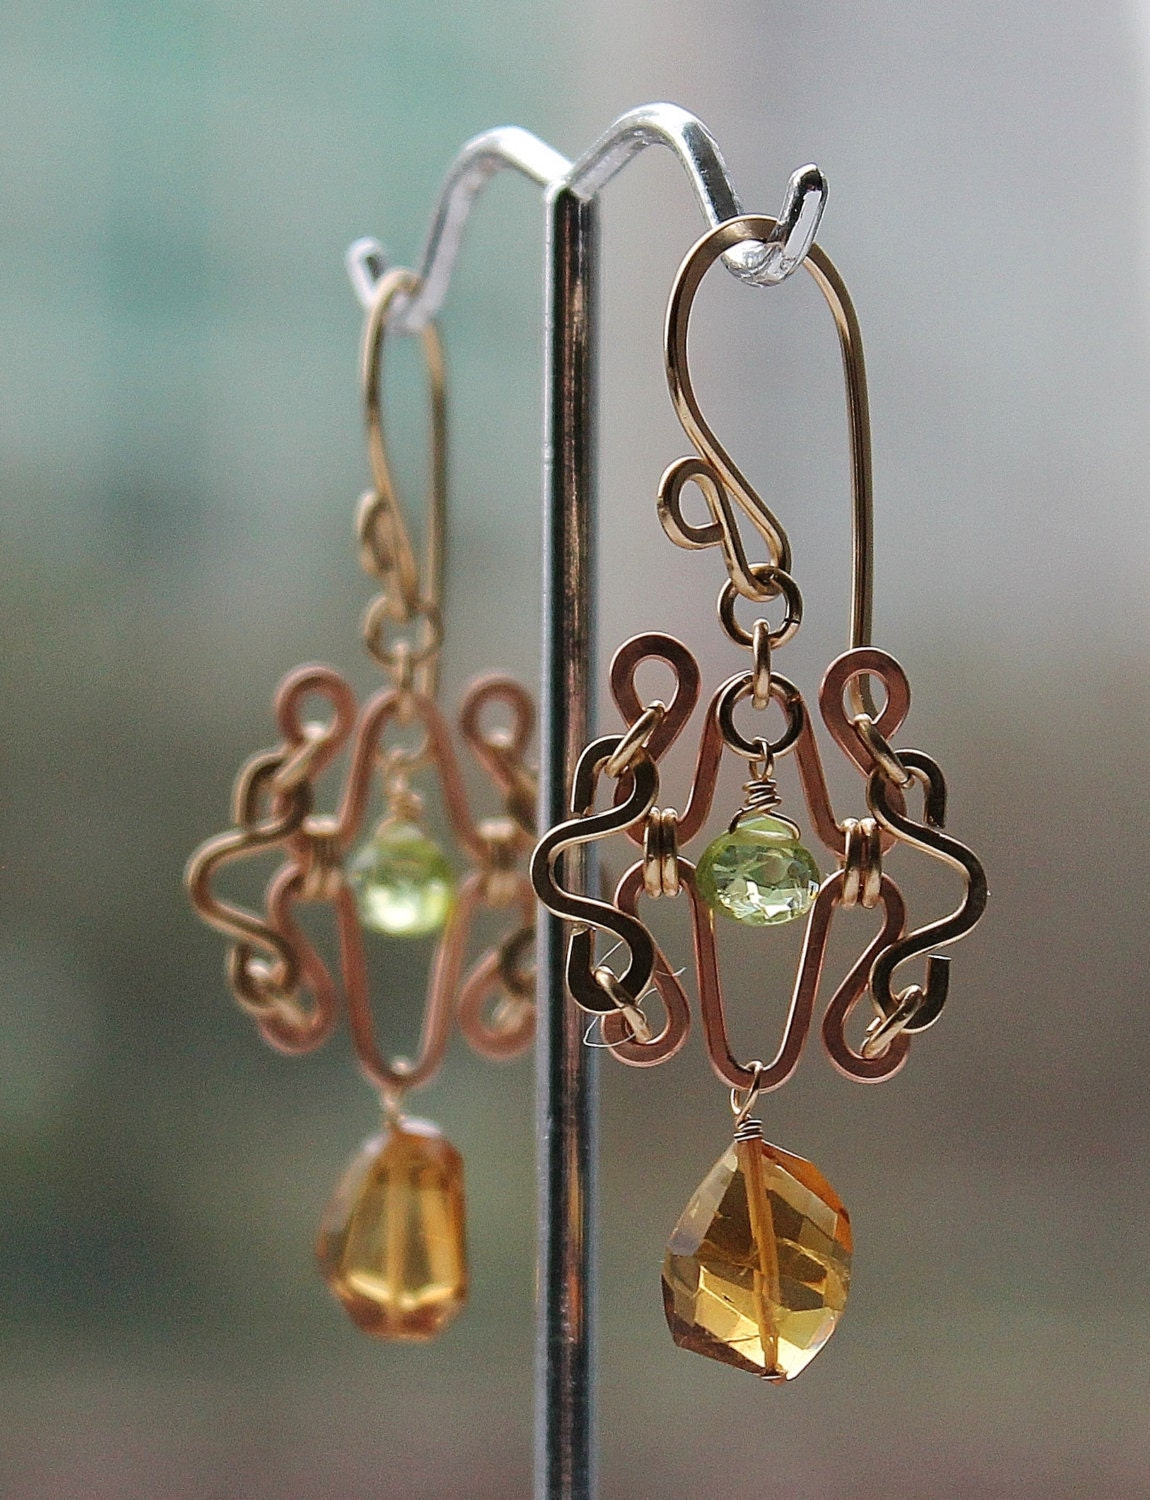 Rose Gold and 14 Karat Gold Filled Chandelier Earrings with